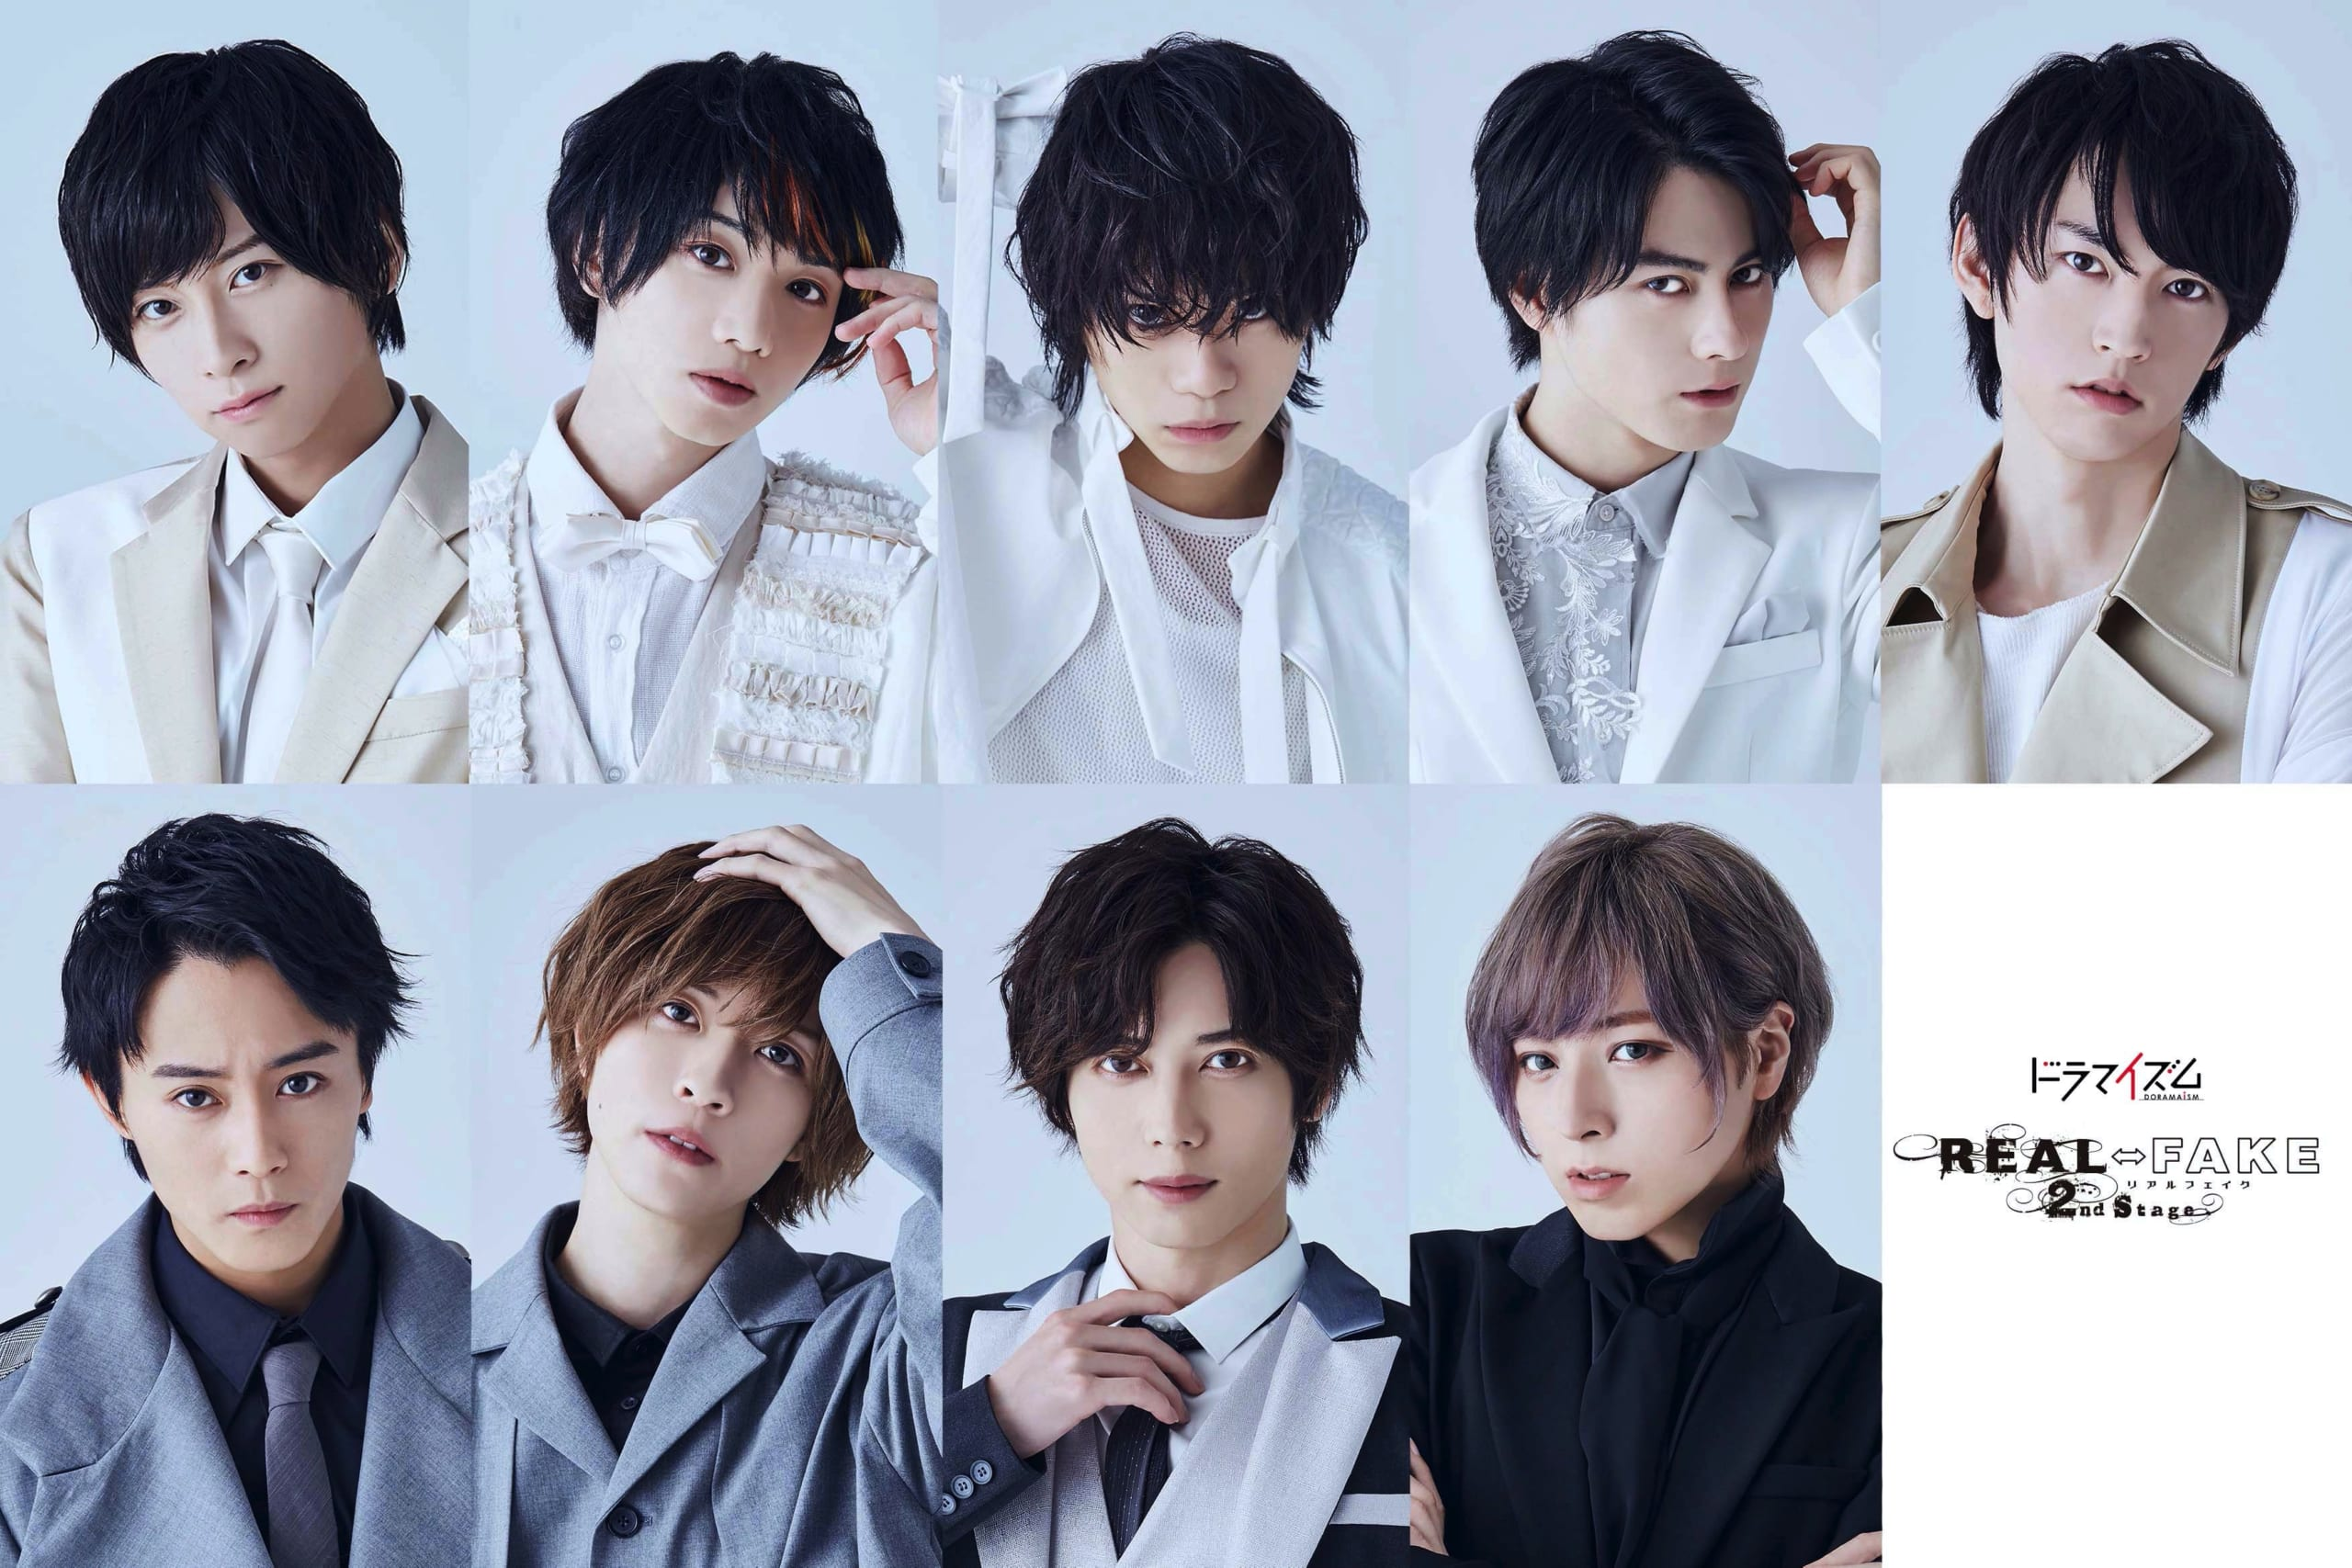 「REAL⇔FAKE 2nd Stage」キャスト組み写真